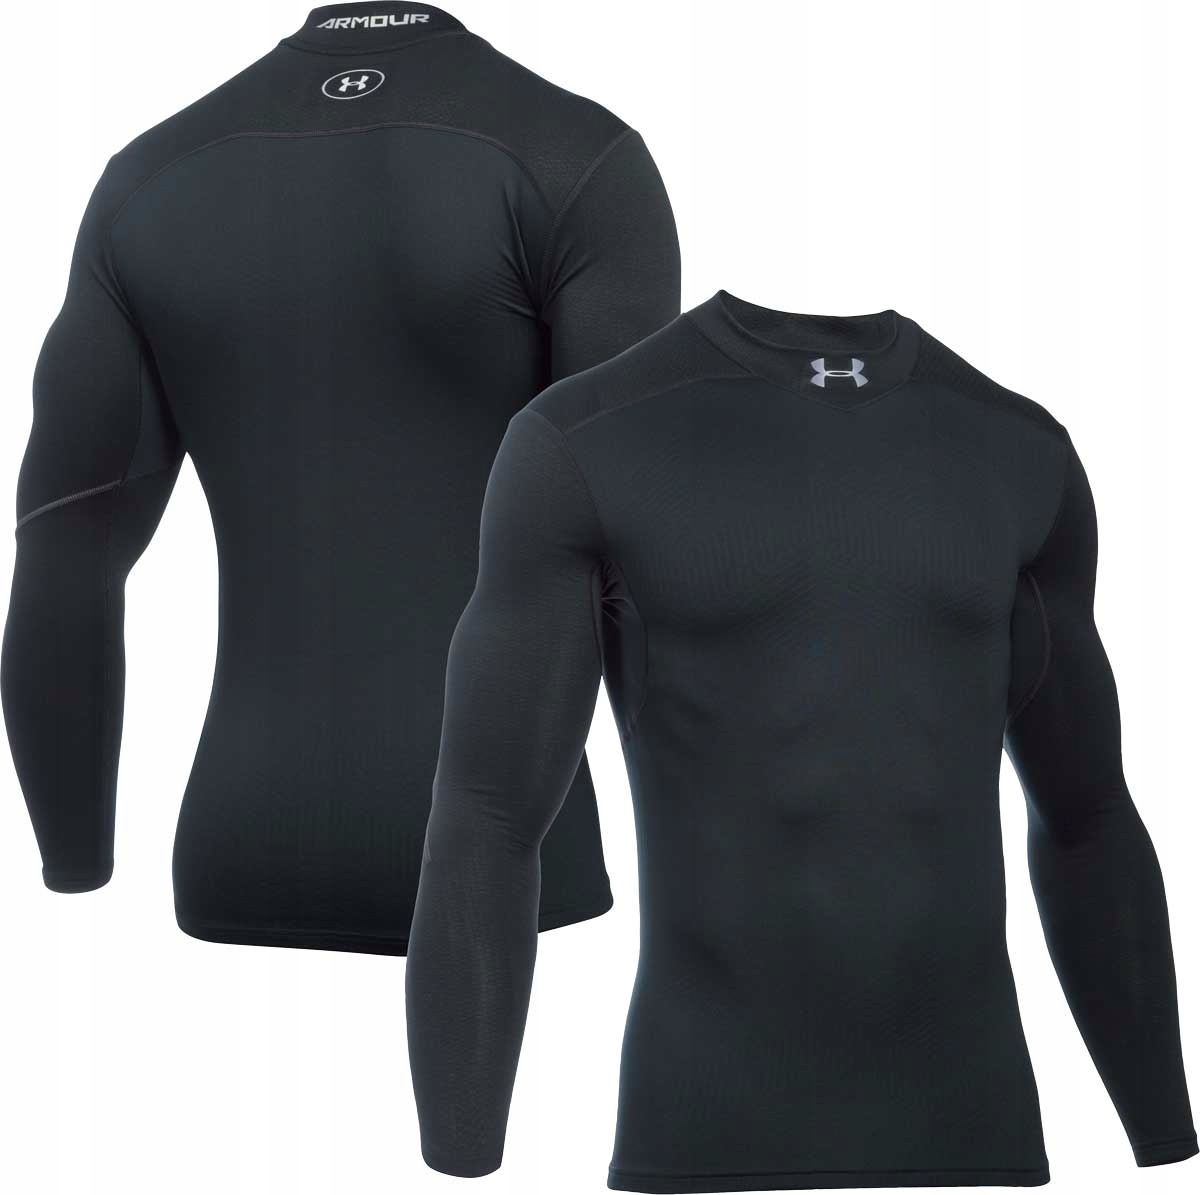 UNDER ARMOUR COLDGEAR MOCK koszulka męska - S -